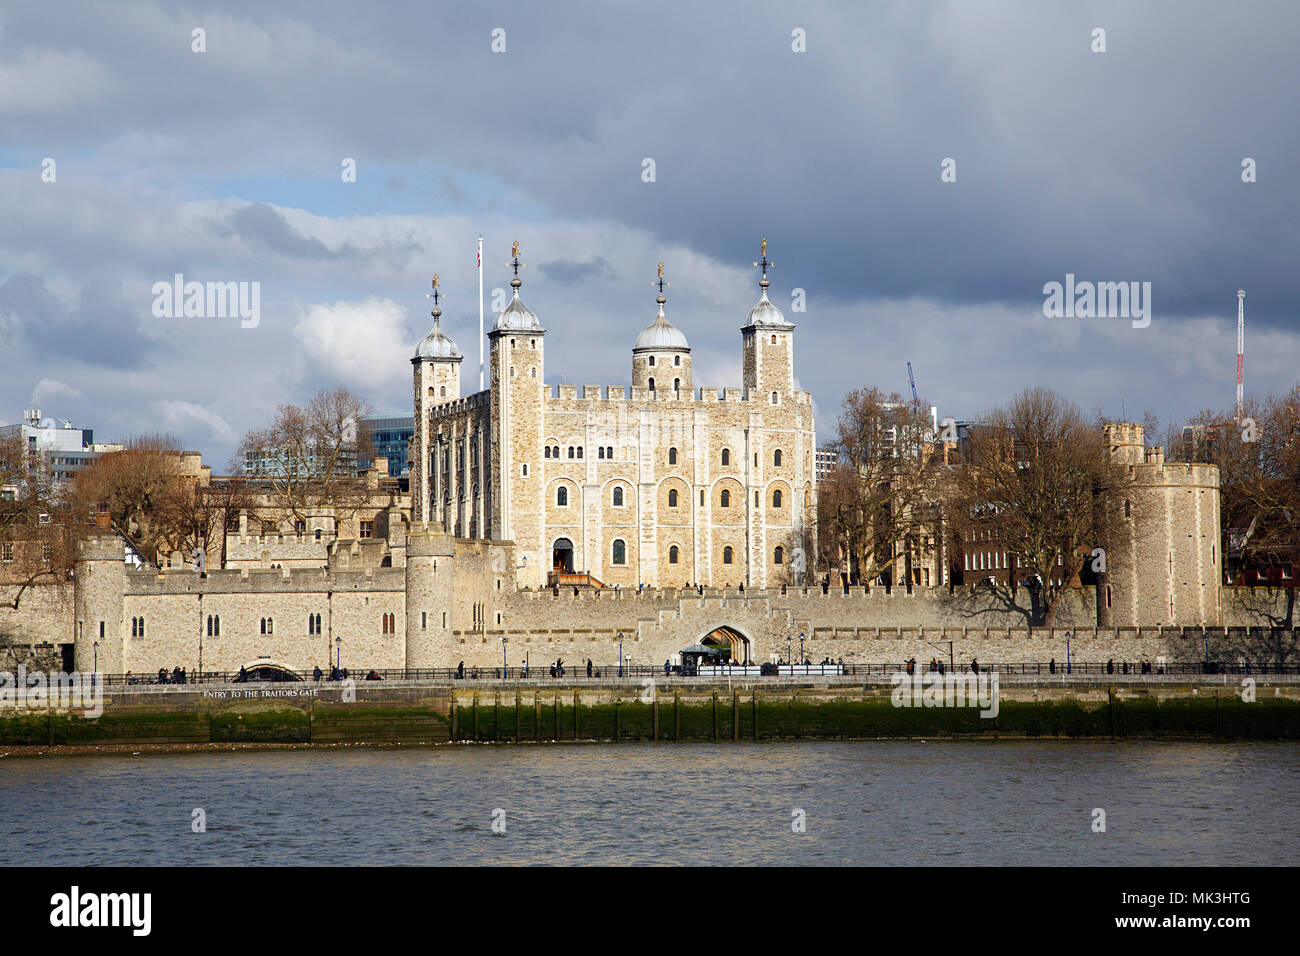 Tower of London and Traitors Gate on the banks of the Thames River. The gate was built by Edward I to provide a water gate entrance to the Tower. - Stock Image